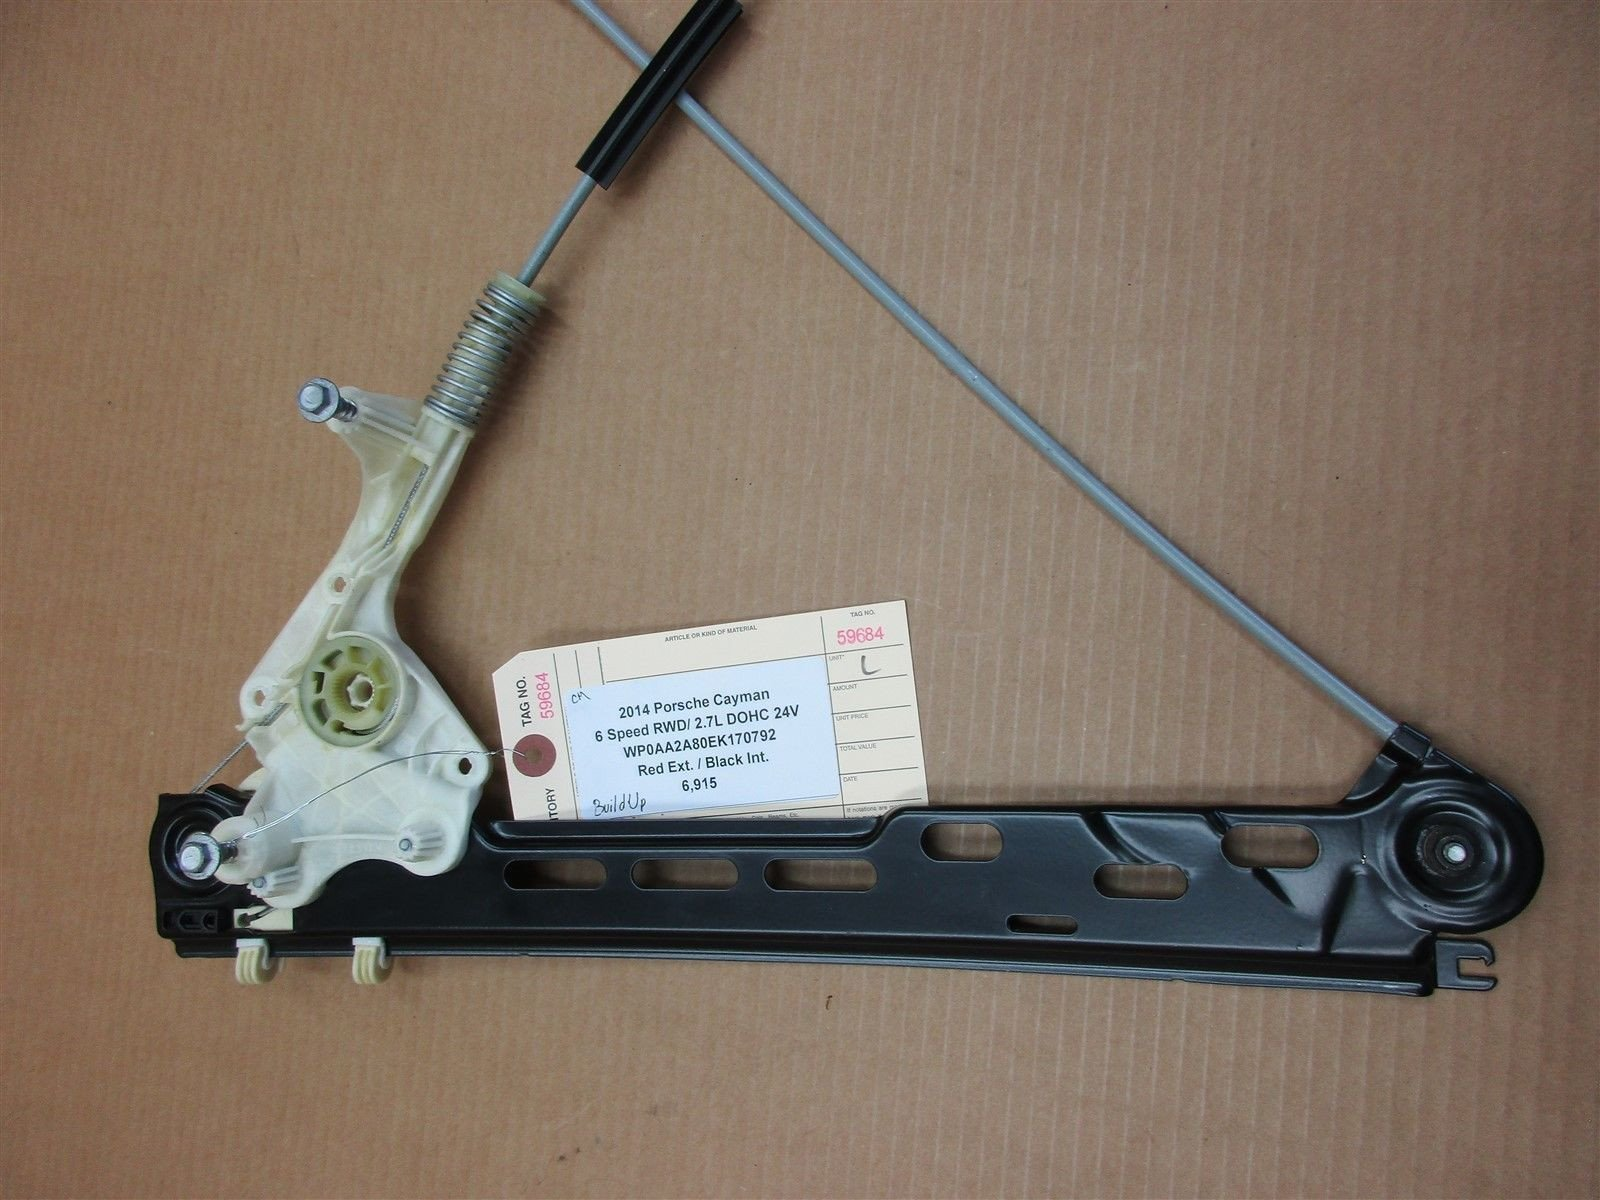 14 Cayman RWD Porsche 981 L DRIVER WINDOW REGULATOR 99154207501 6,915